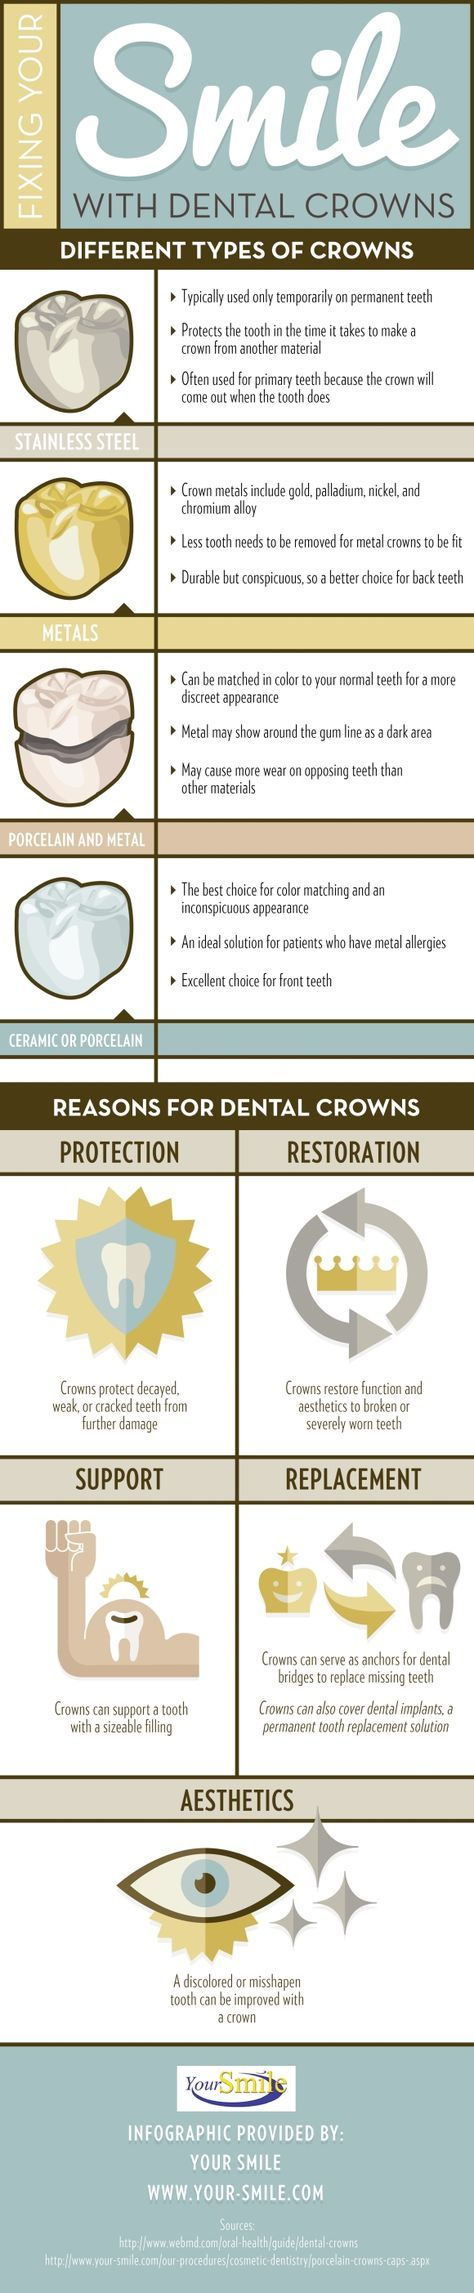 Permanent Gold Teeth Implants : permanent, teeth, implants, Patients, Dental, Crowns?, These, Devices, Protect,, Restore,, Support,, Replace,, Improve, Appearance, Dental,, Crowns,, Dentistry